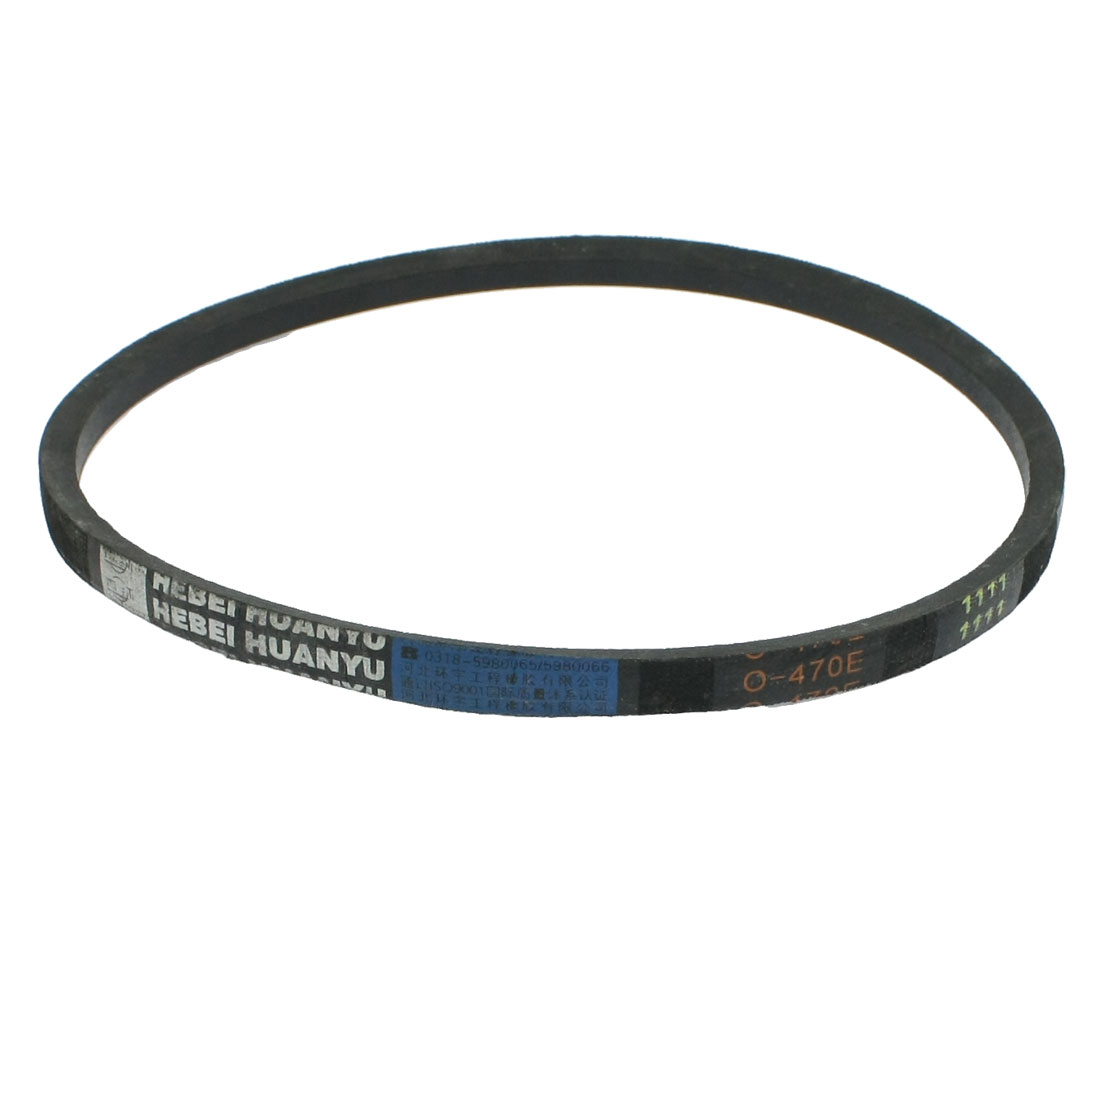 Unique Bargains Black Machinery Transmission Rubber Band Vee Belt O-470E